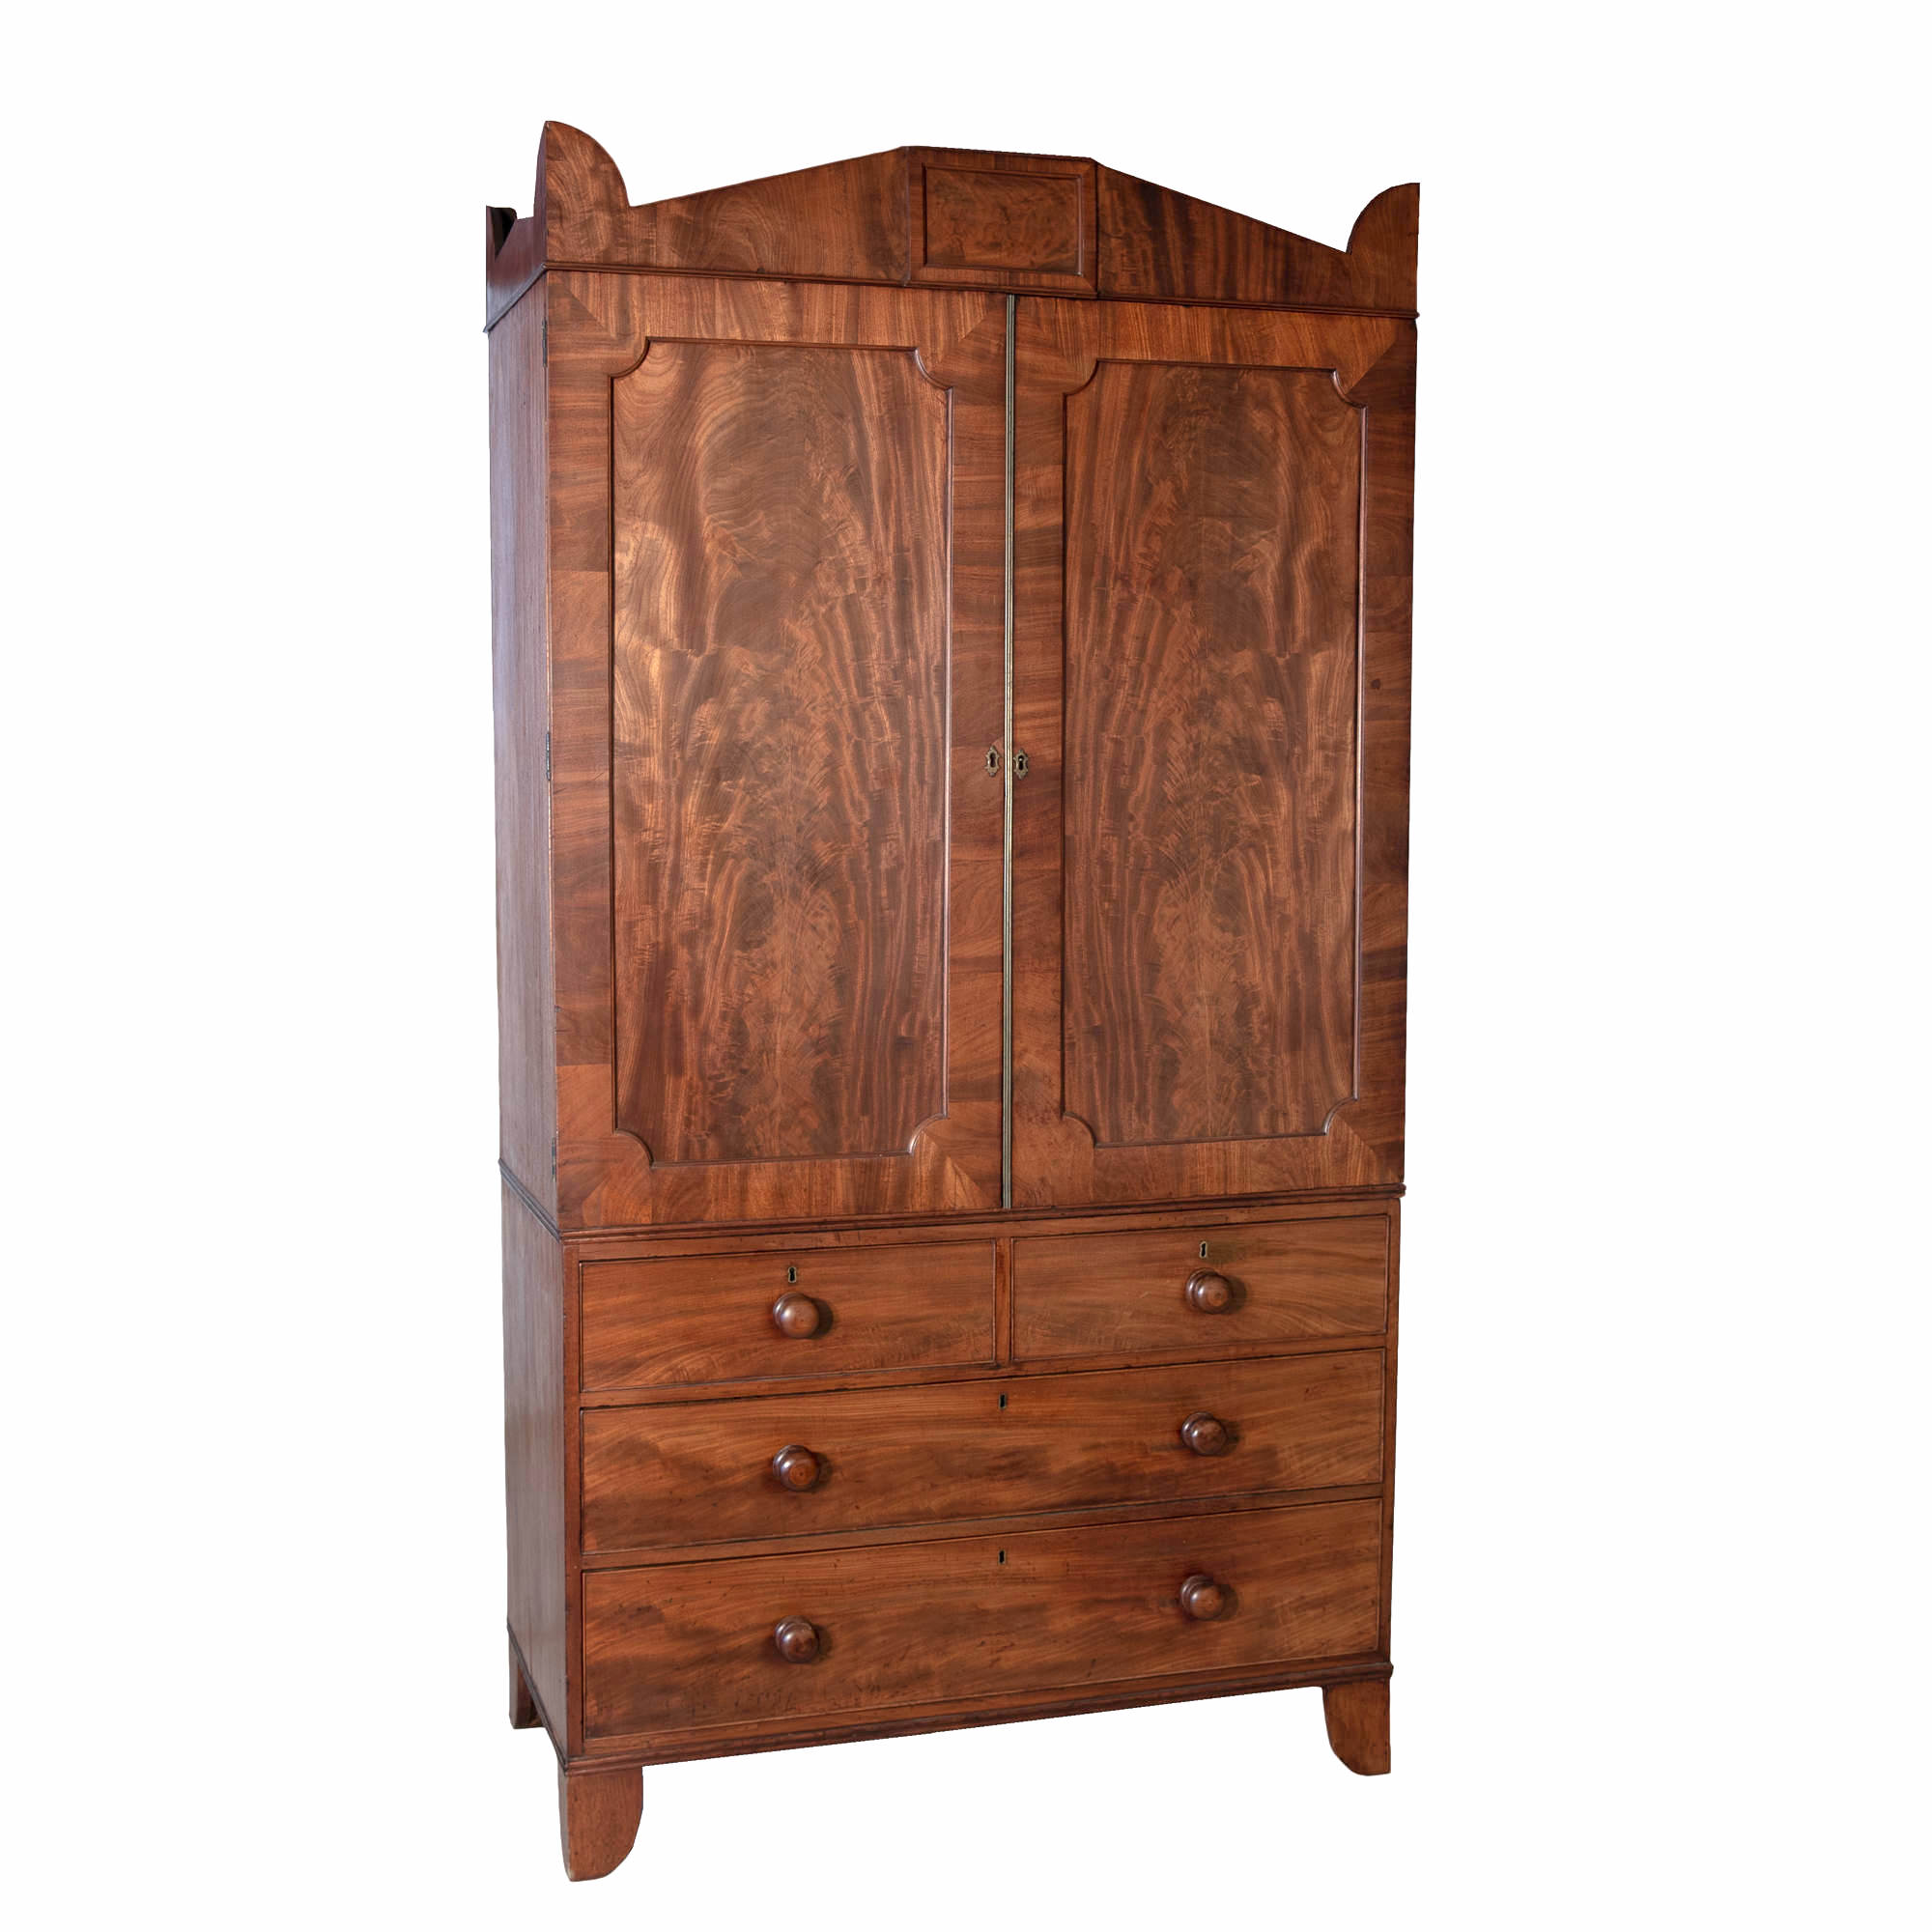 'Regency Period Mahogany Linen Press with Classical Grecian Pediment Early 19th Century'